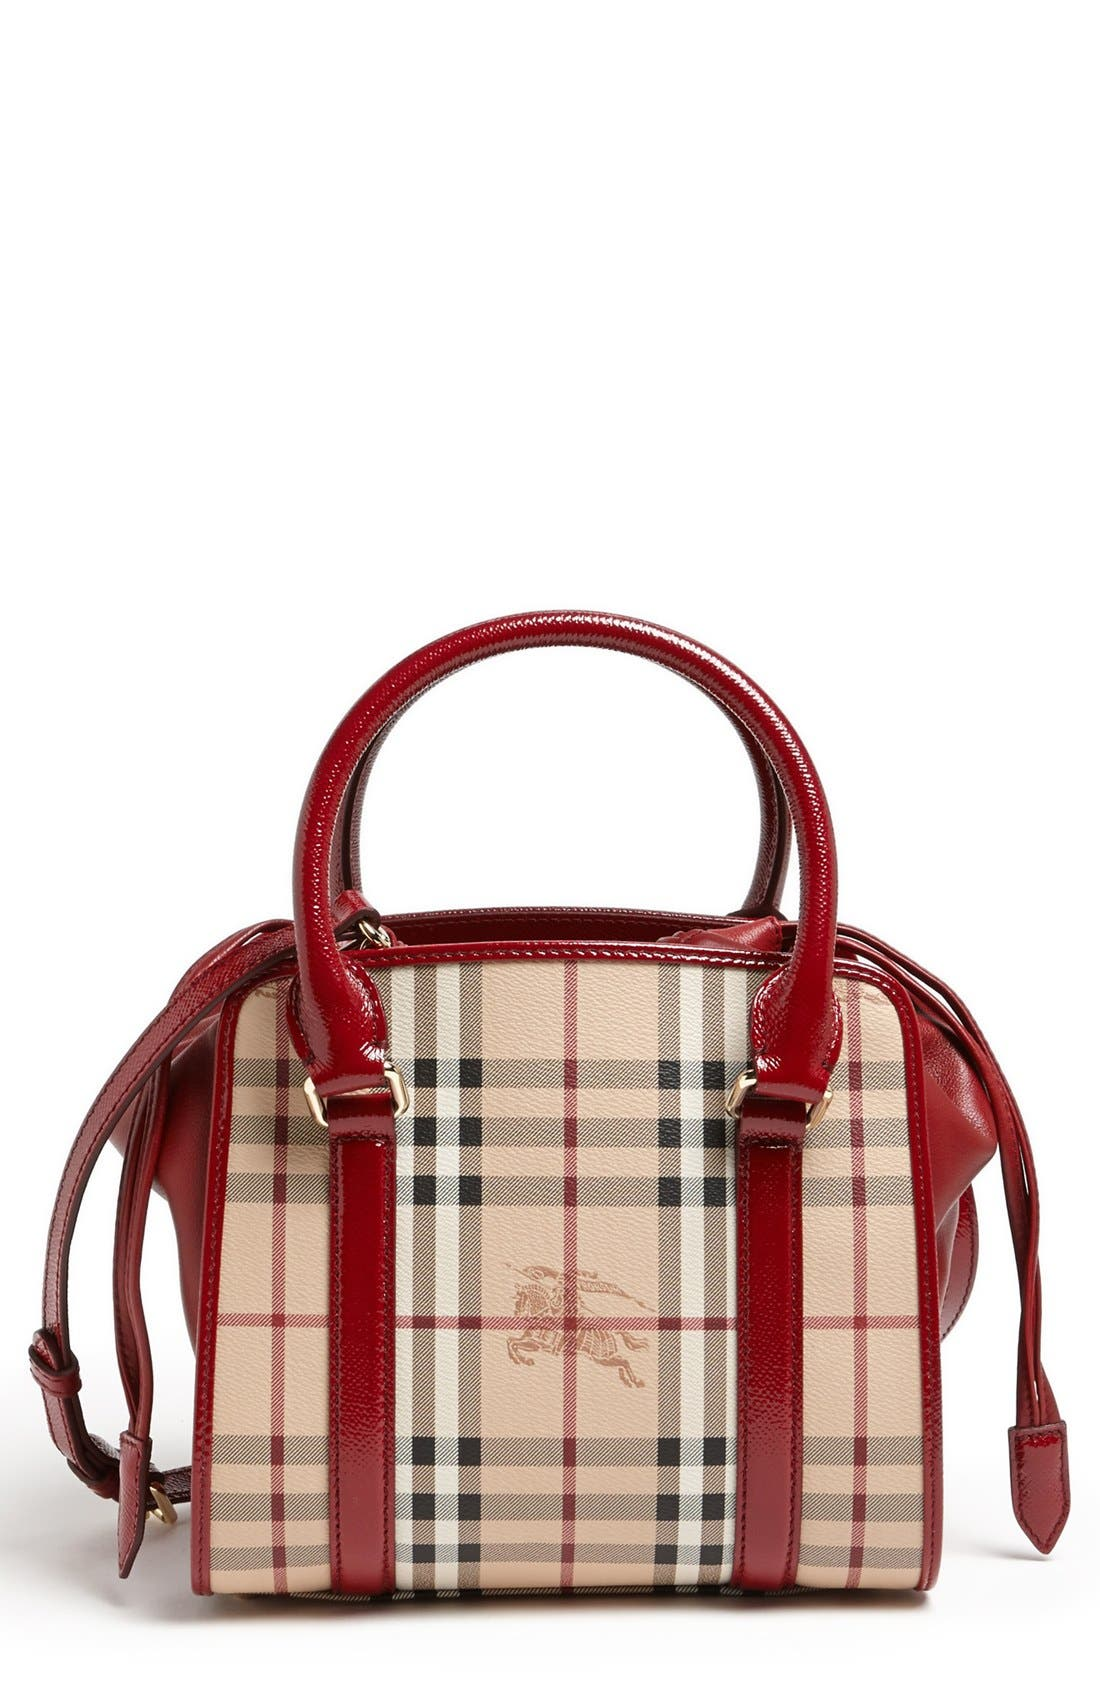 Alternate Image 1 Selected - Burberry 'Small Dinton' Satchel